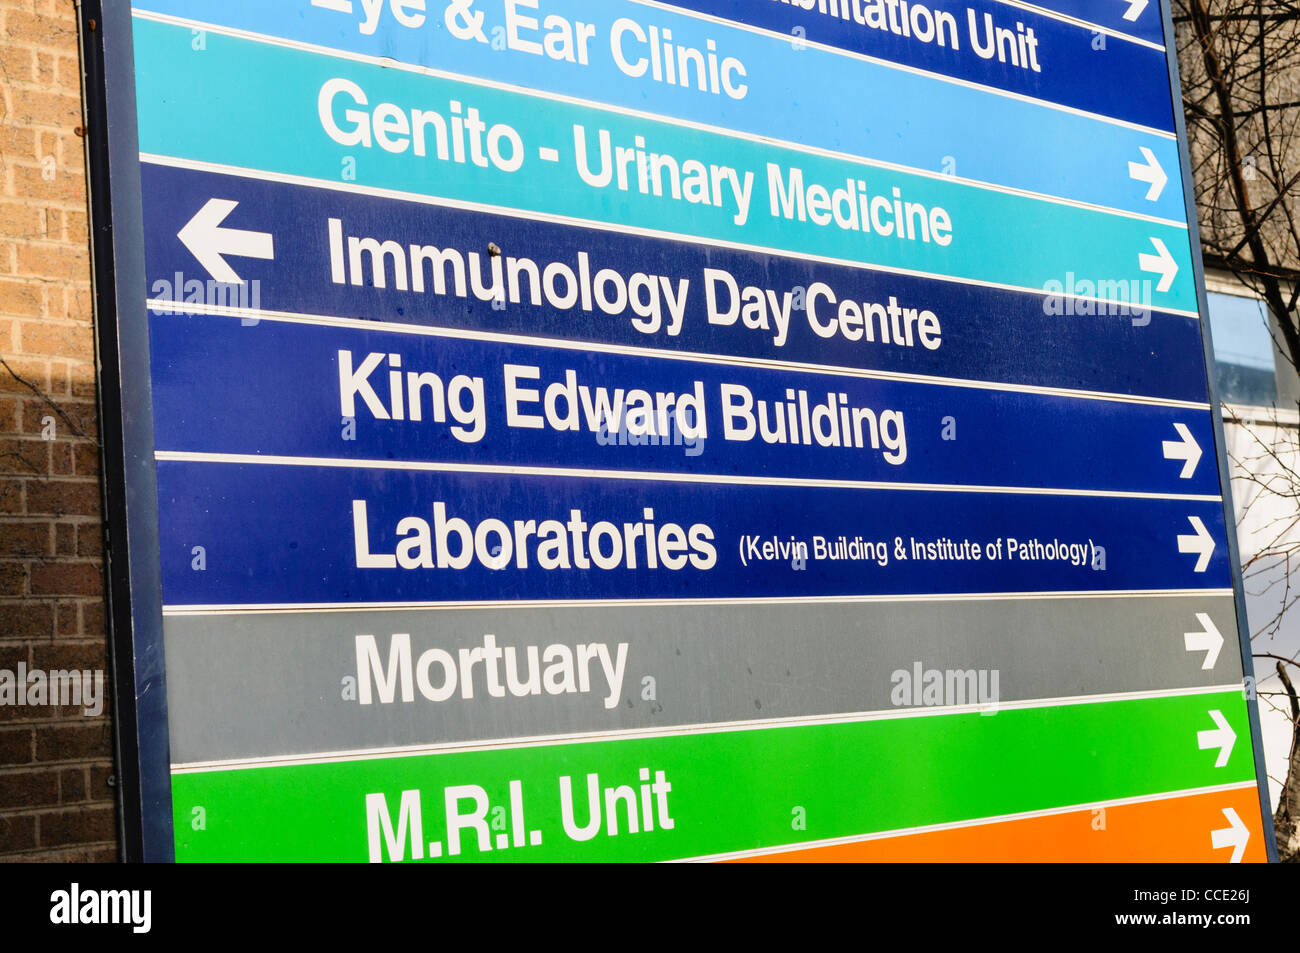 Signs at a hospital - Stock Image